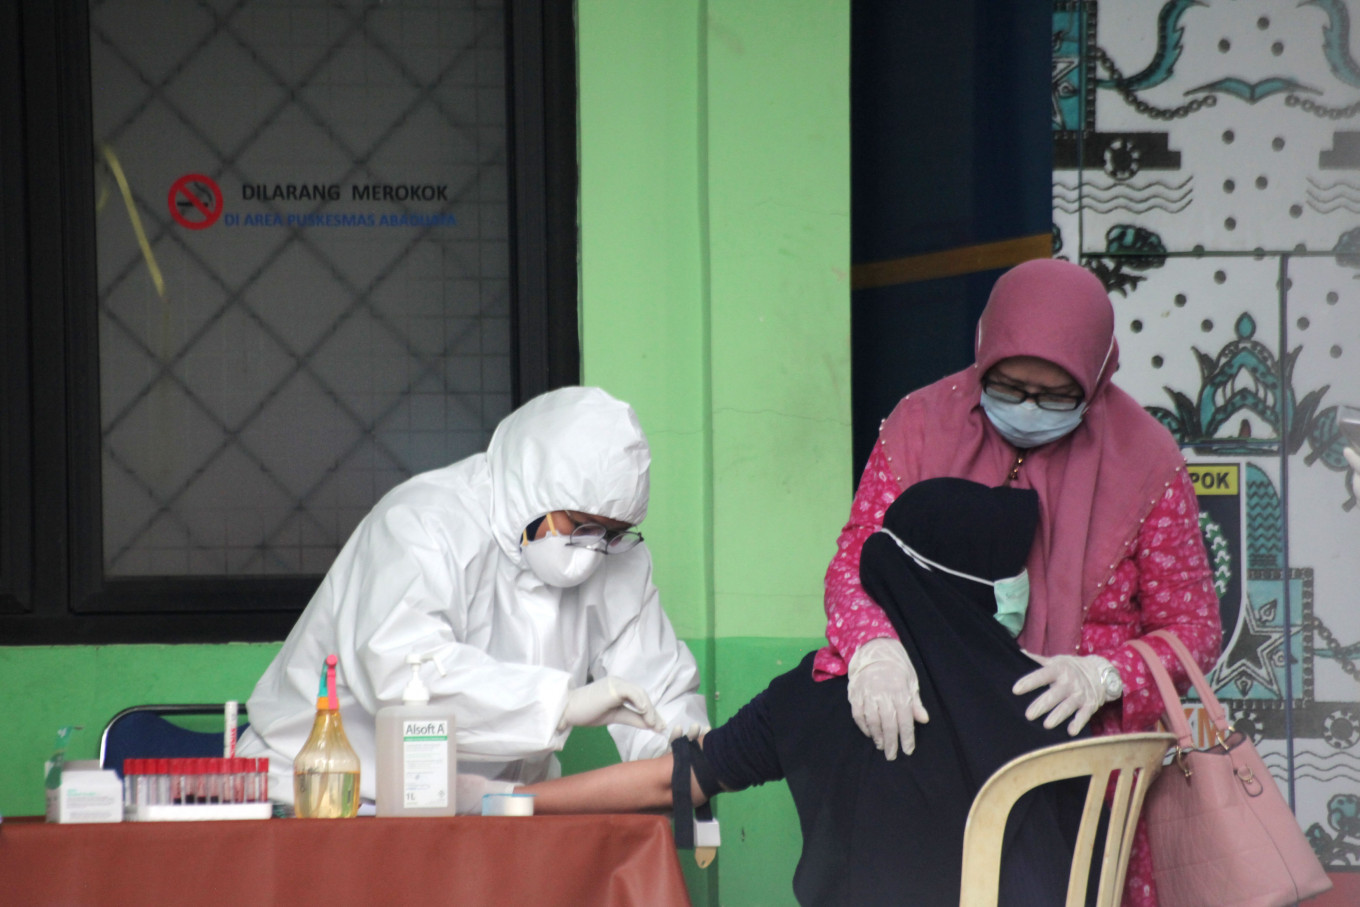 Indonesian government could use TB test kits for COVID-19, doctor says